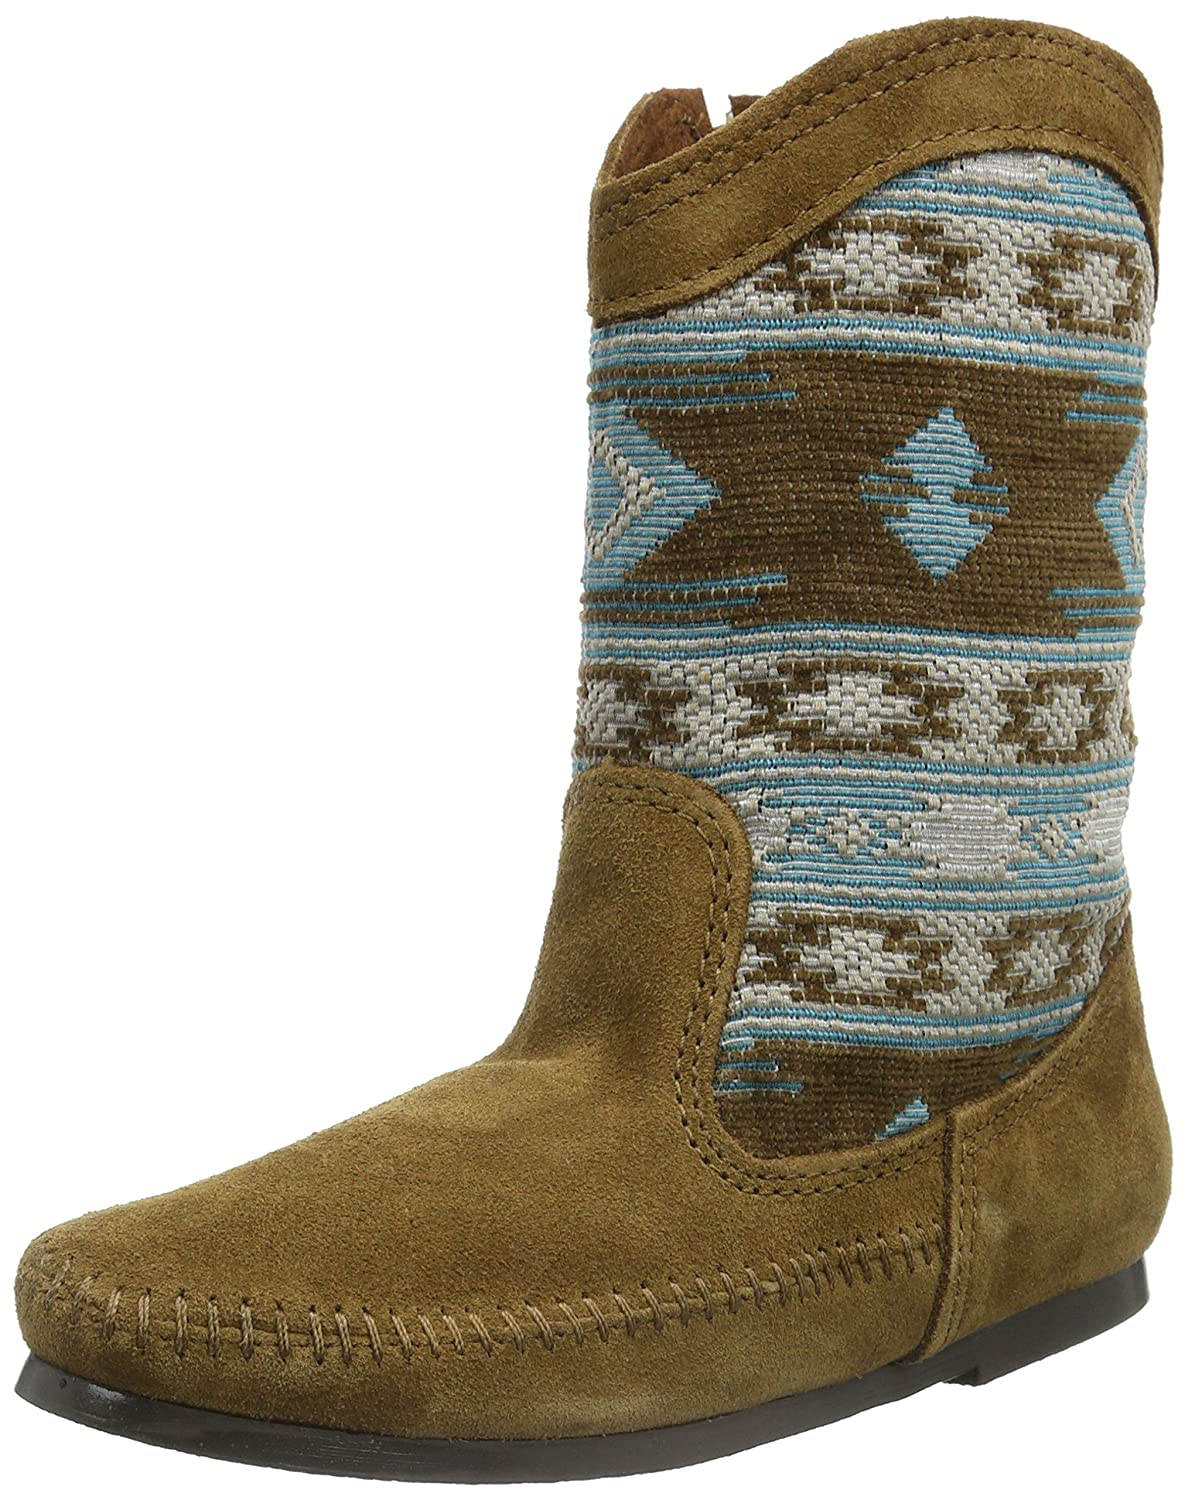 Minnetonka Women's Baja B(M) Slouch Boot B00X81NGOA 6 B(M) Baja US|Dusty Brown Suede/Turquoise Fabric f6974d